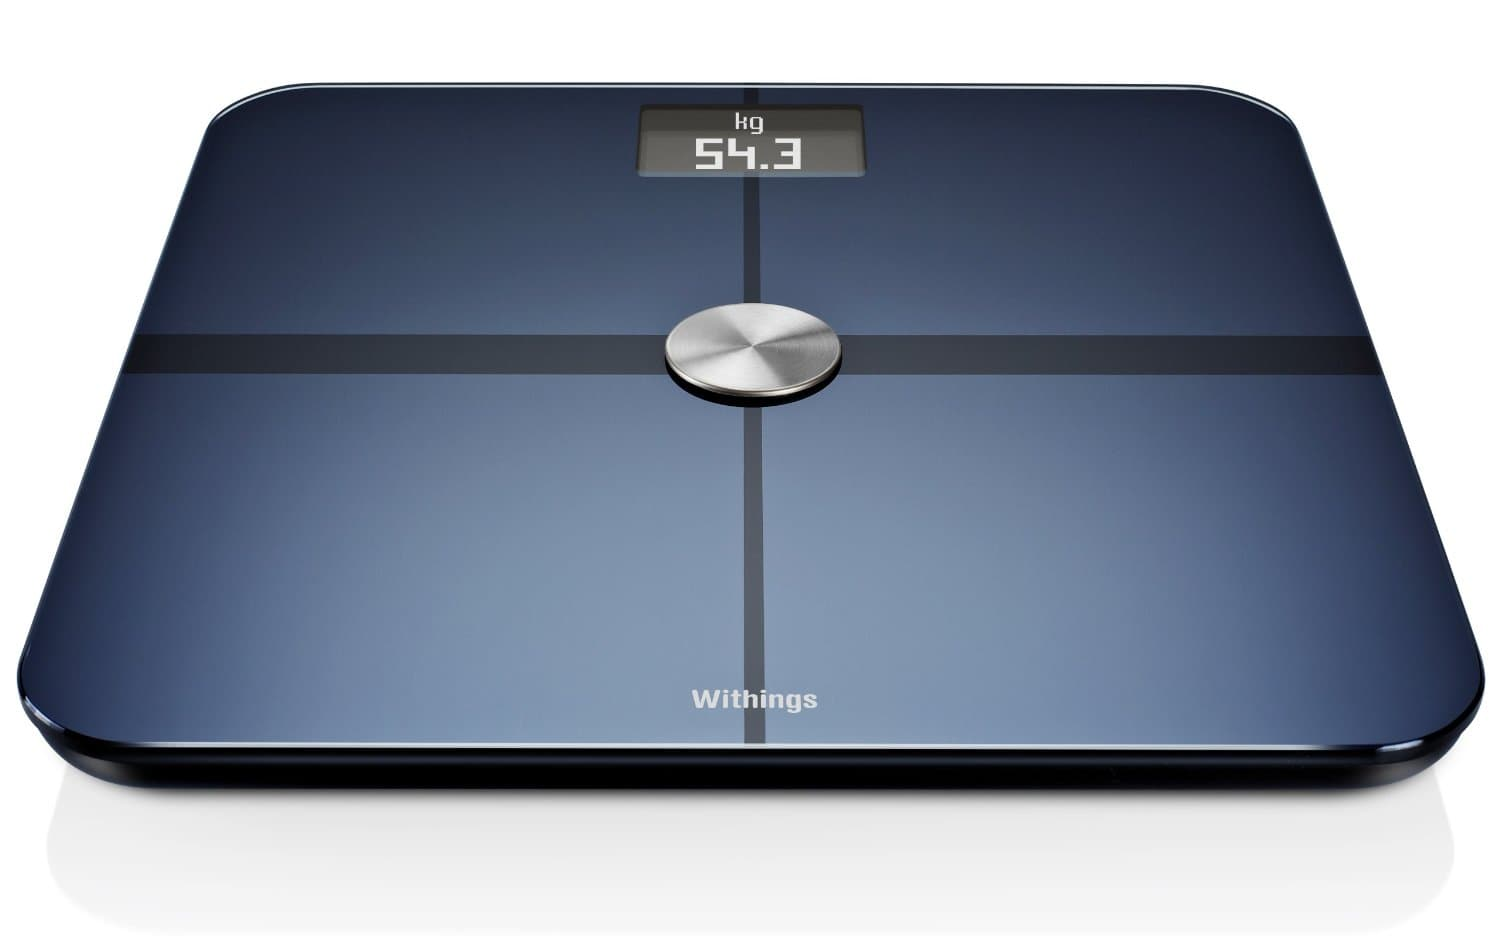 Withings WS 50 Best_Bathroom_Scales Best Bathroom Scales